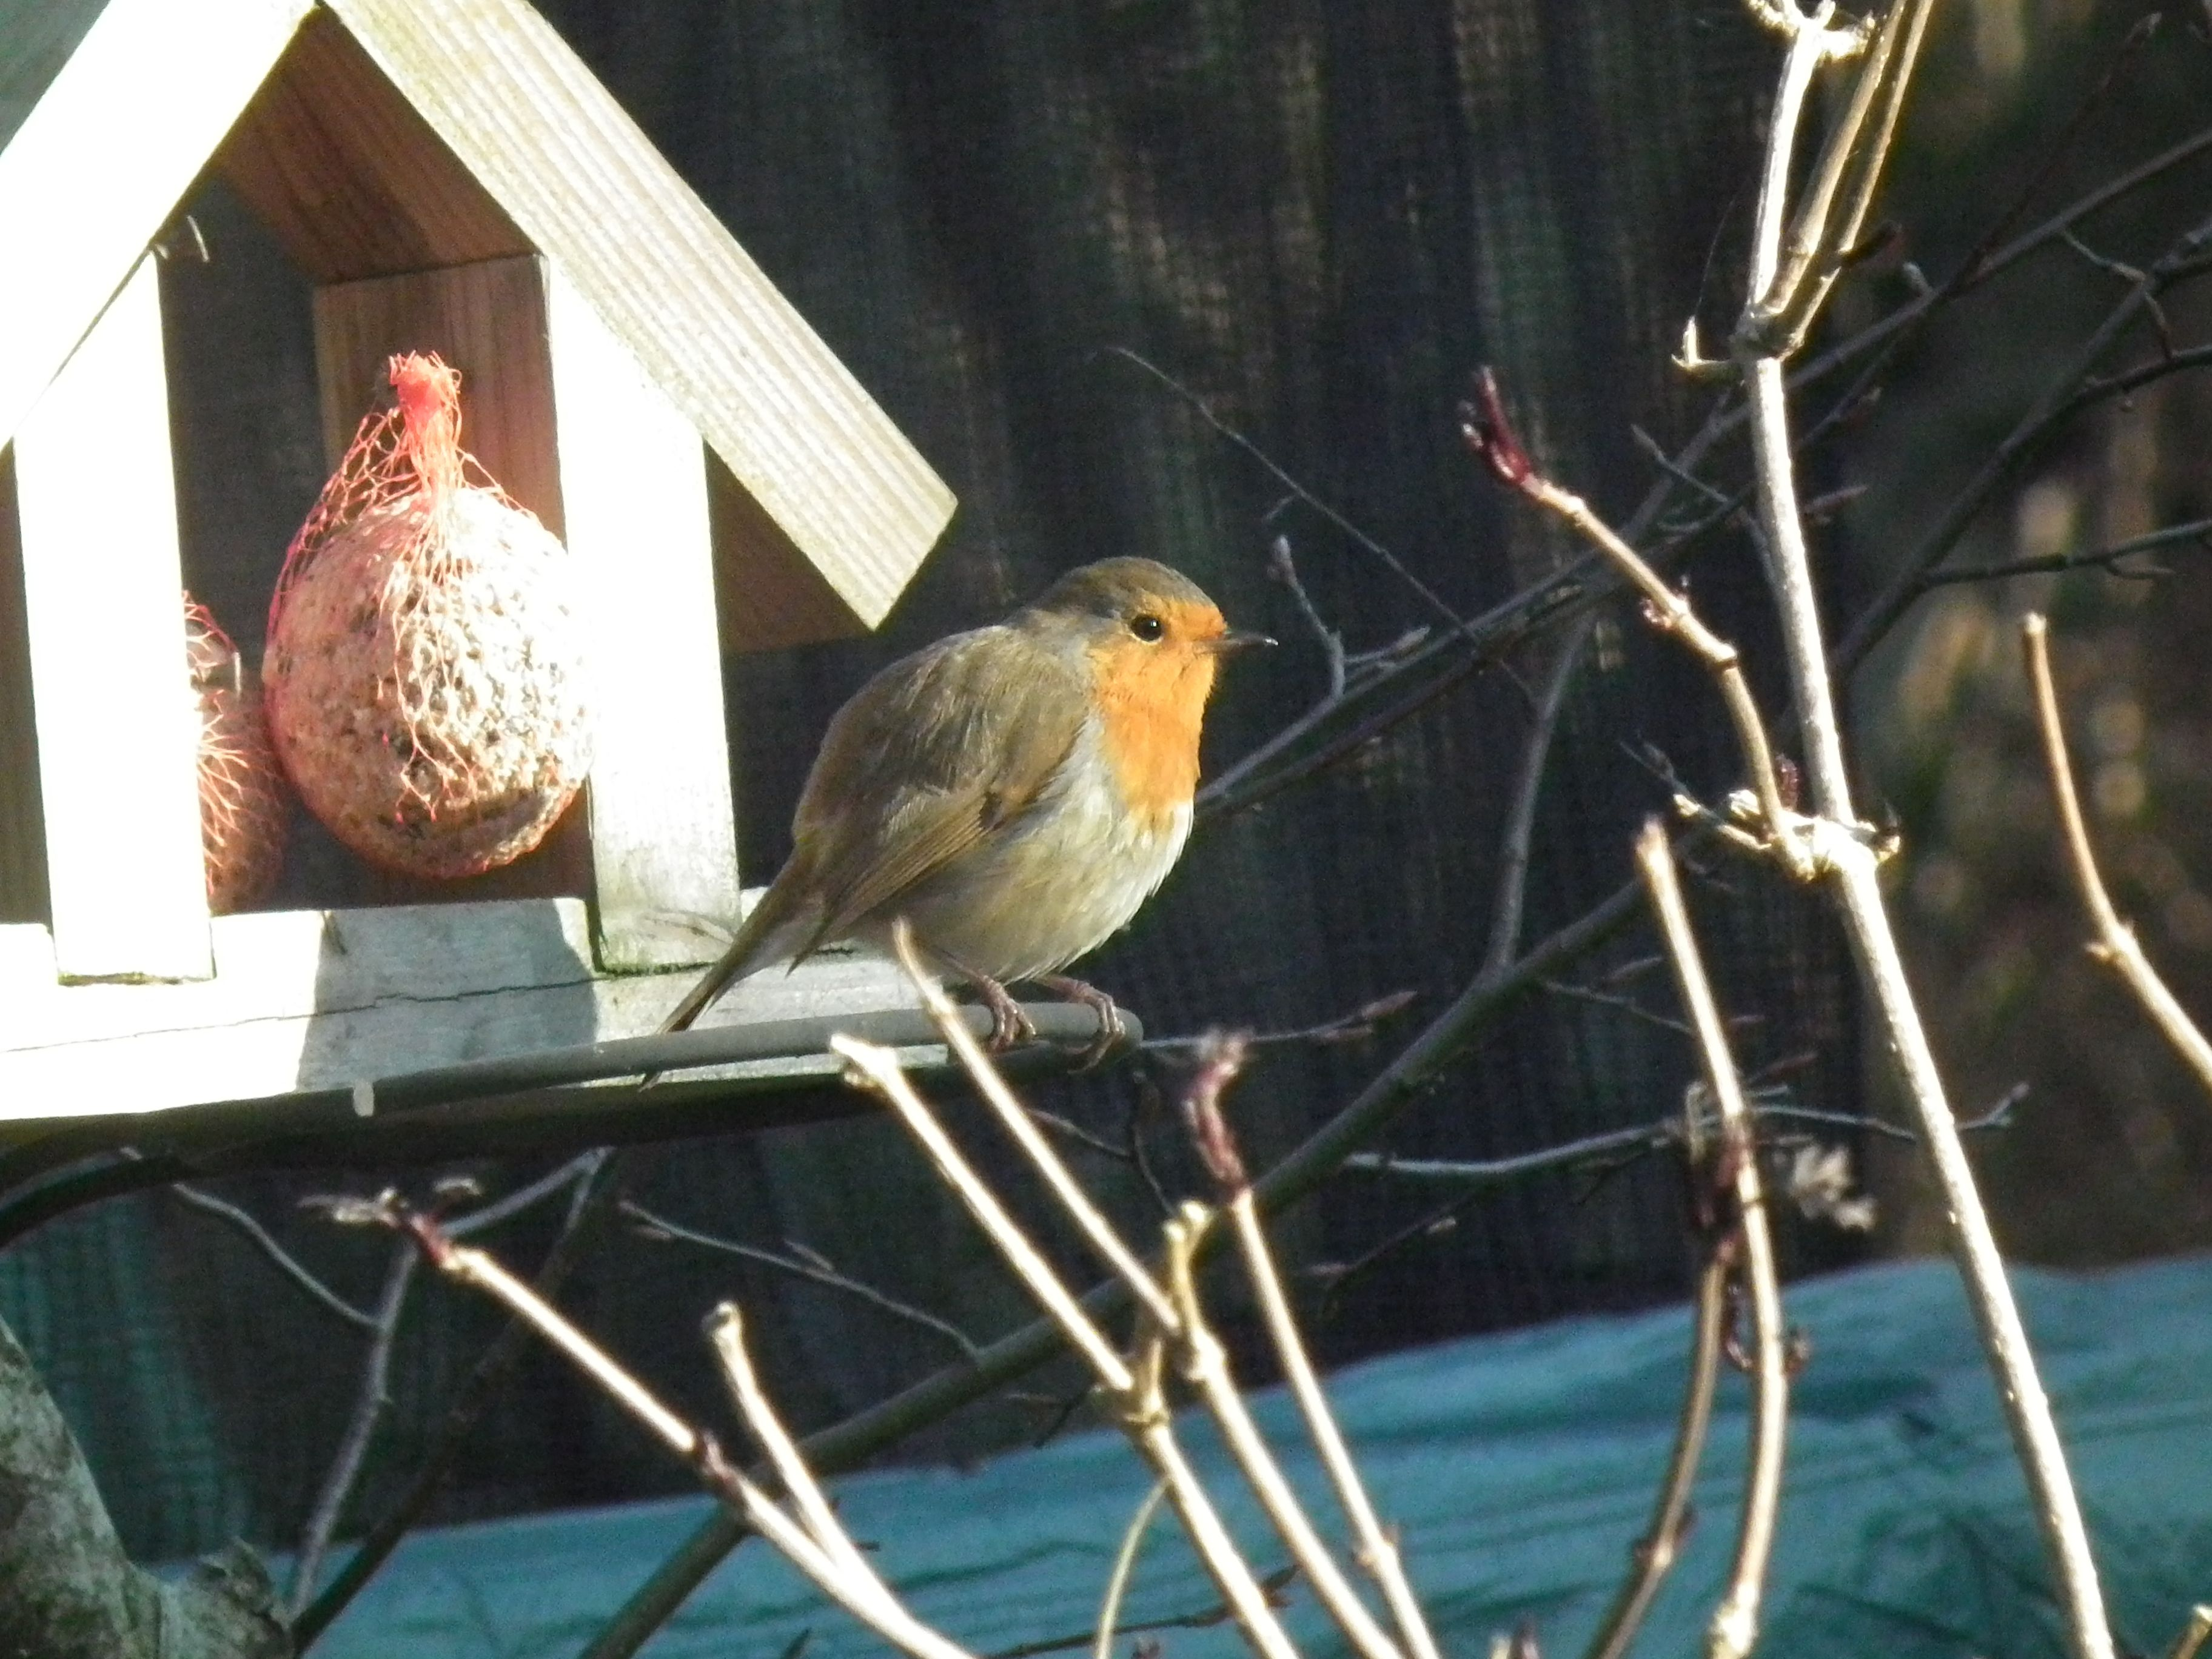 Our resident robin